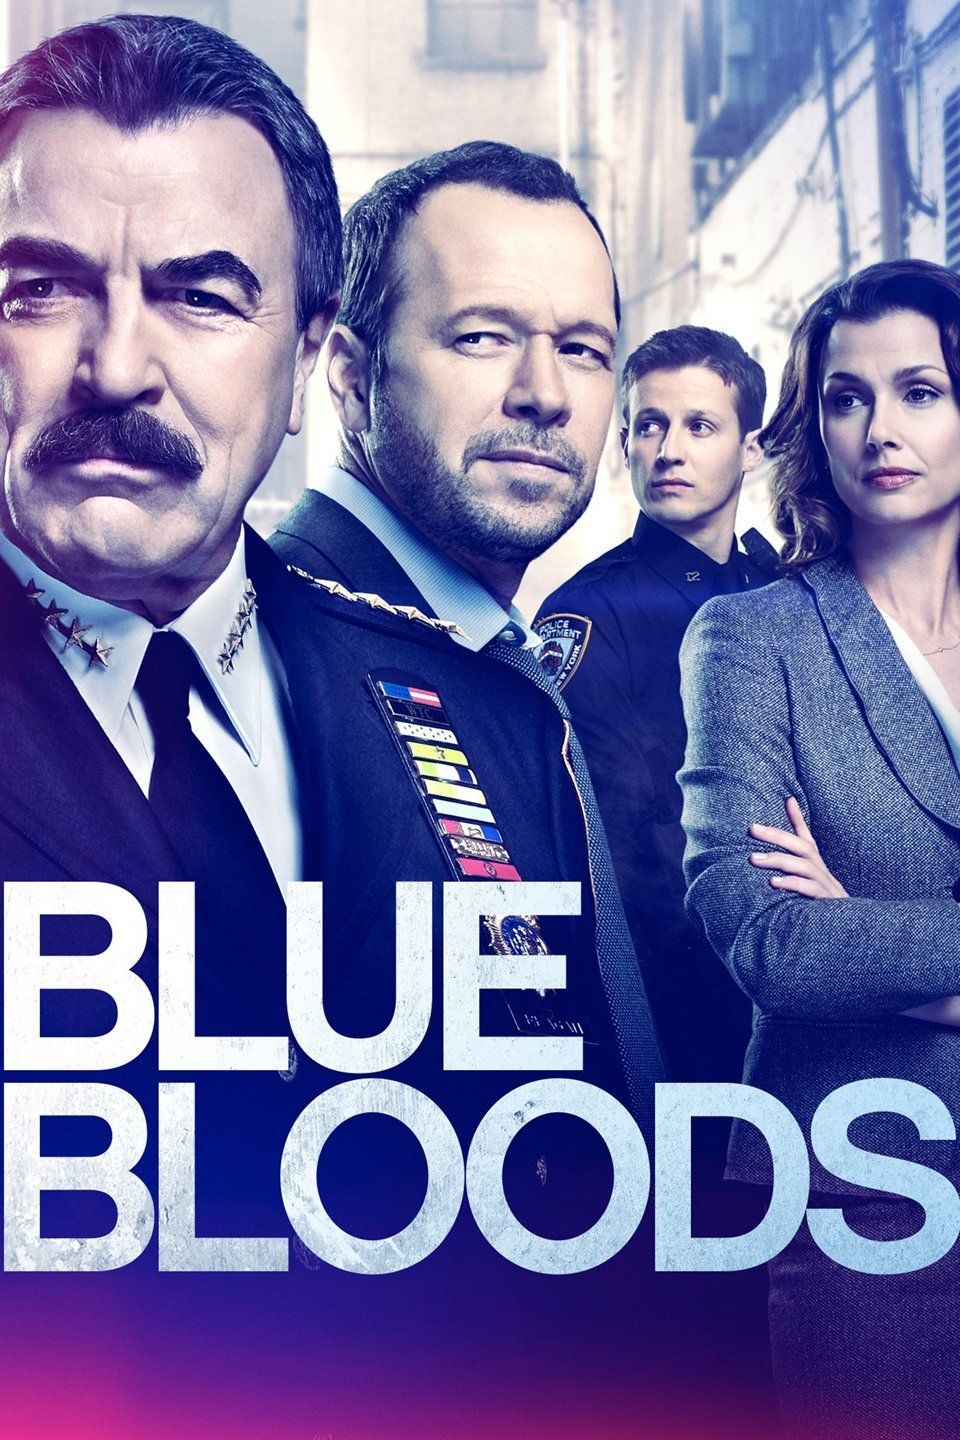 Blue Bloods - Season 10 Episode 17 - unknown